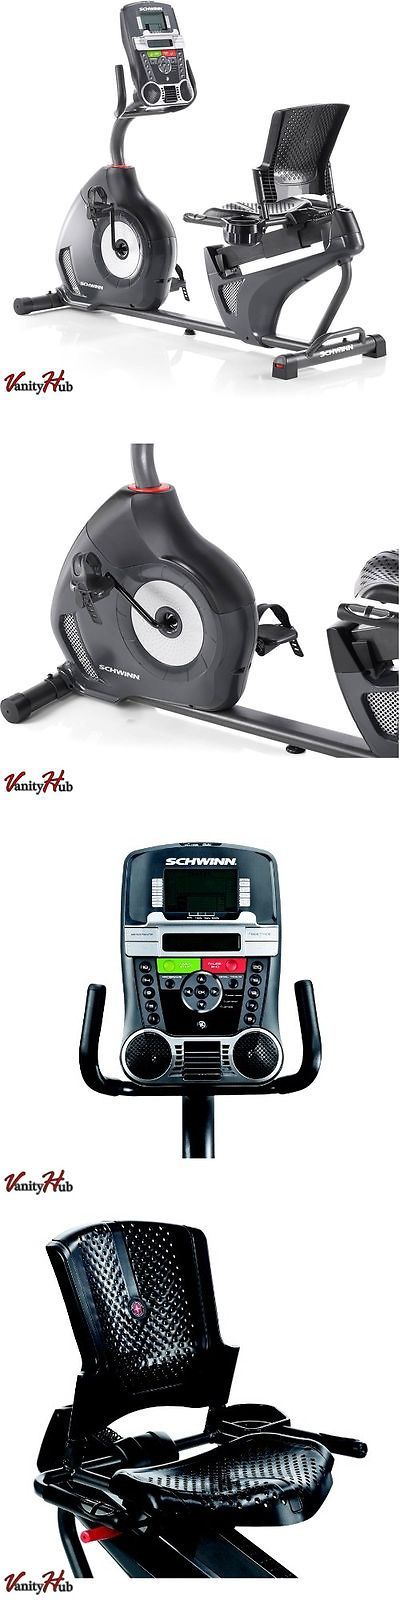 Exercise Bikes 58102: Recumbent Exercise Bike Gym Trainer Fitness Bicycle Stationary Cardio Equipment BUY IT NOW ONLY: $368.71